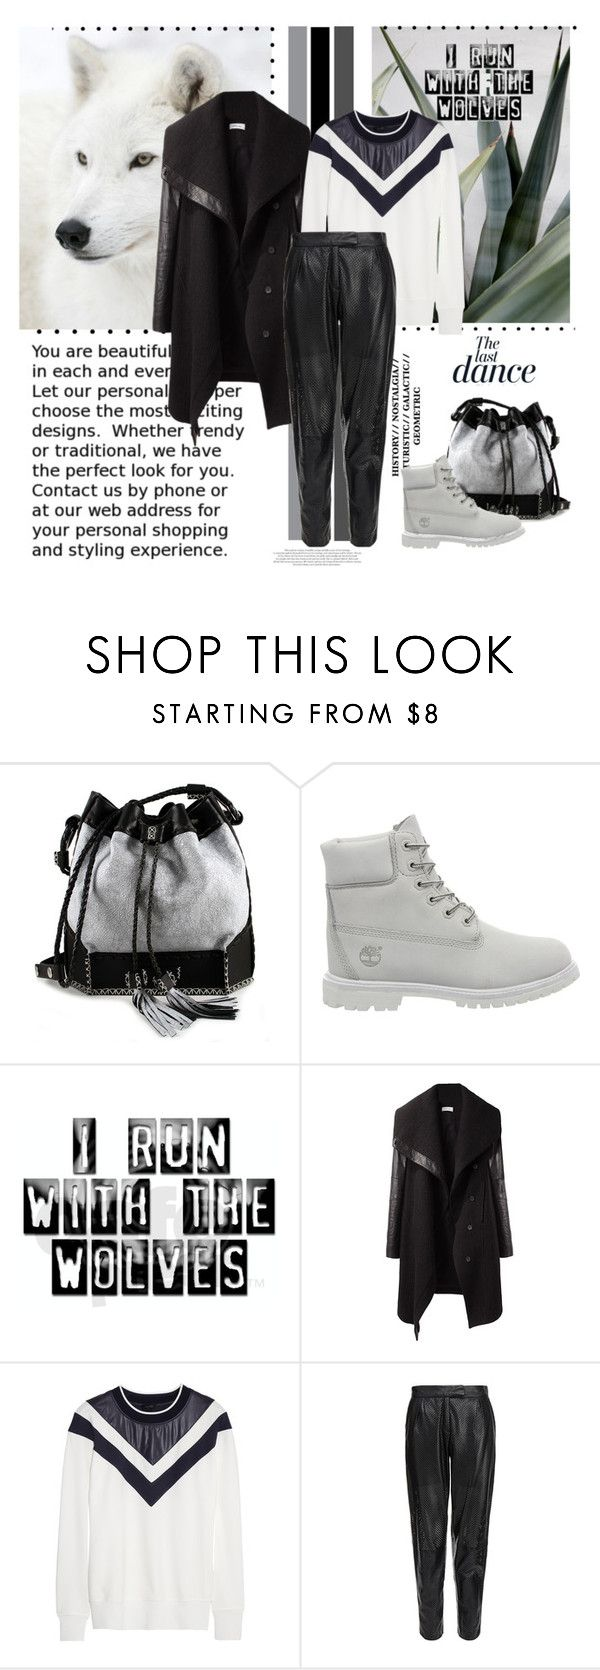 """Black and White"" by madina9 ❤ liked on Polyvore featuring Carianne Moore, Timberland, Helmut Lang, Theory, MuuBaa, Anja, women's clothing, women, female and woman"